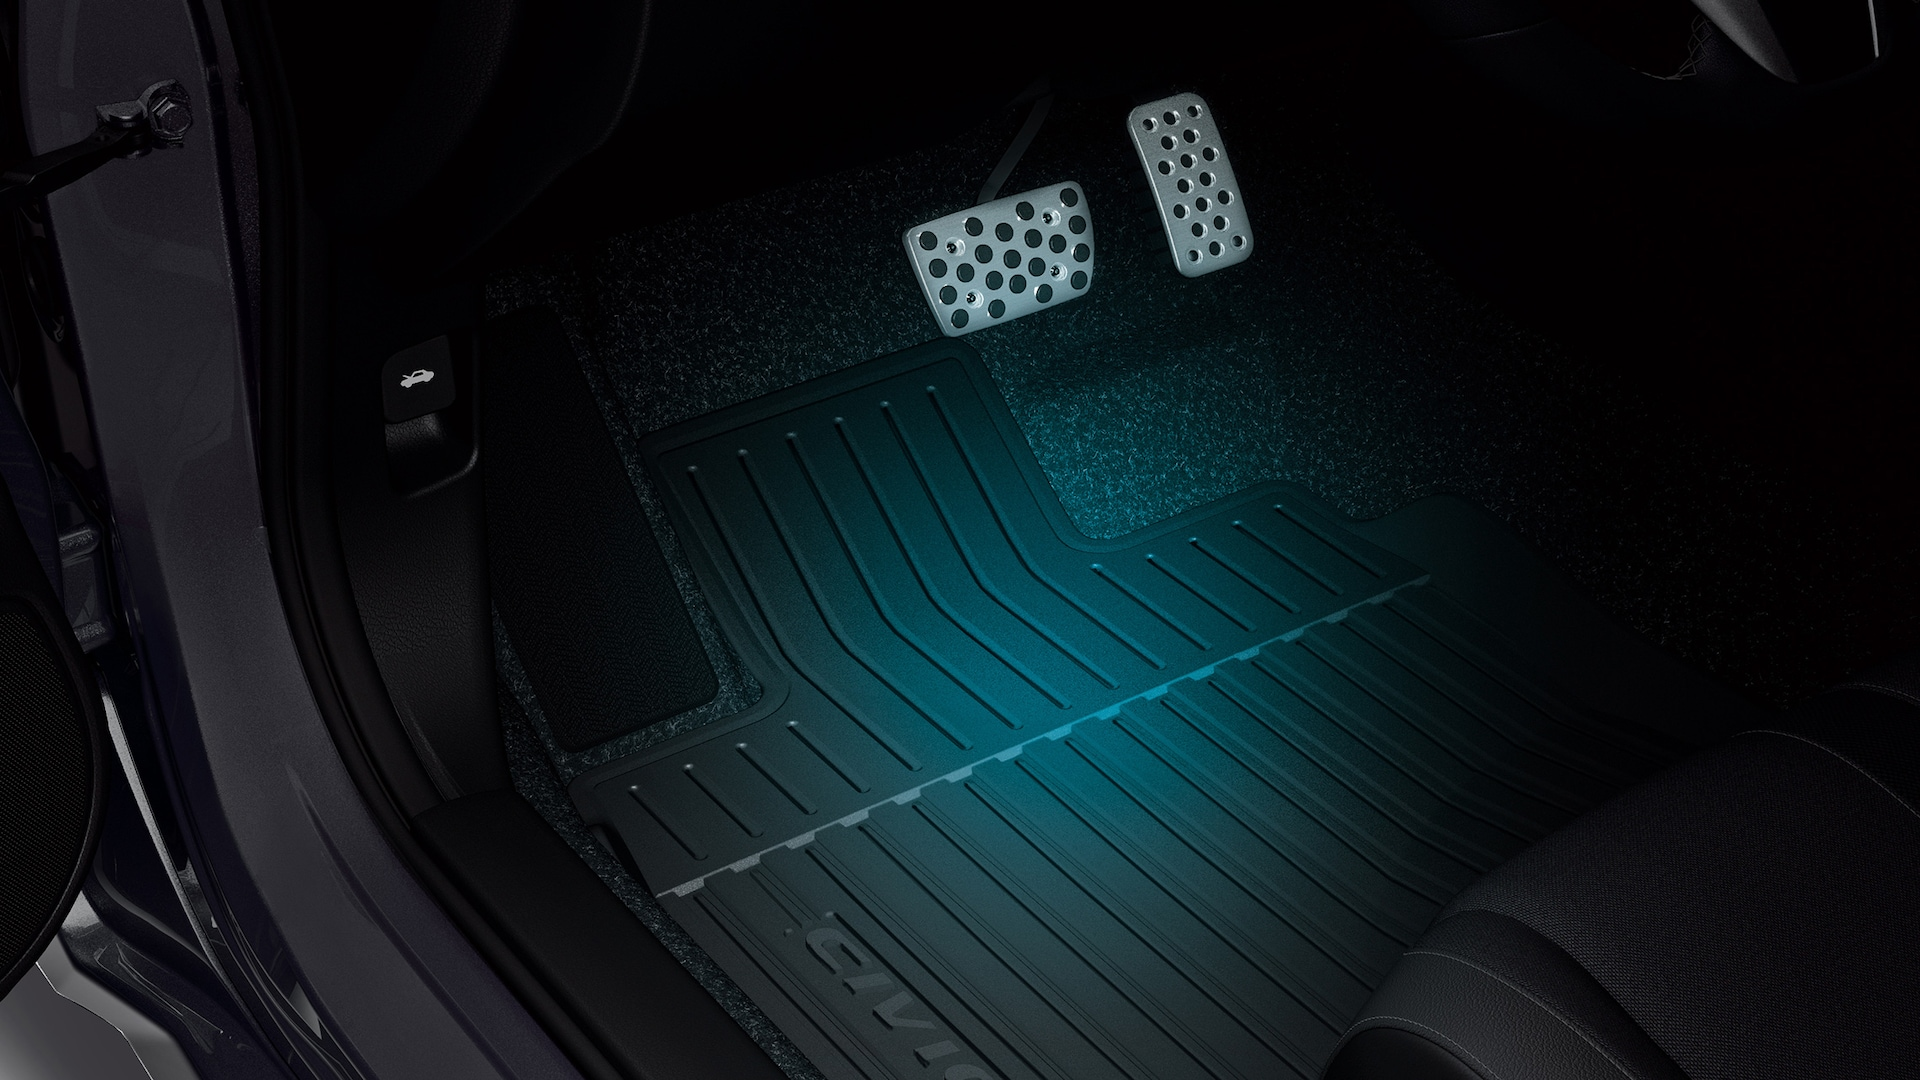 Illuminated all-season floor mat detail in the 2021 Honda Civic Sedan.